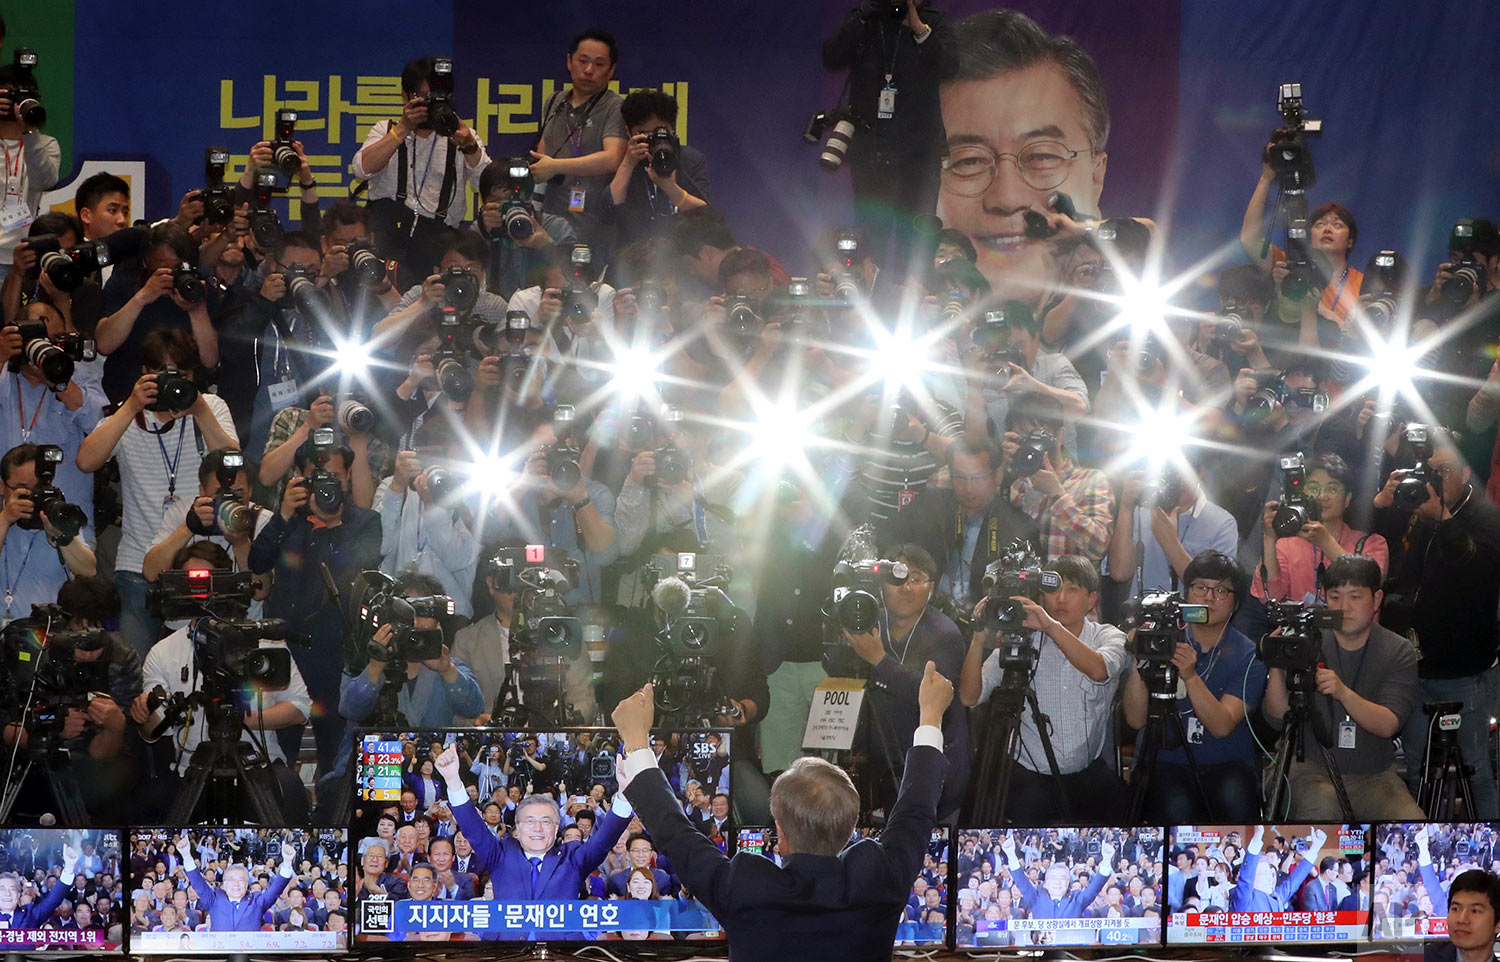 South Korea's presidential candidate Moon Jae-in of the Democratic Party raises his hands in front of the media as his party leaders, members and supporters watch on television local media's results of exit polls for the presidential election at National Assembly in Seoul, South Korea, Tuesday, May 9, 2017. Exit polls forecast that liberal candidate Moon win the election Tuesday to succeed ousted President Park Geun-hye. (AP Photo/Lee Jin-man)